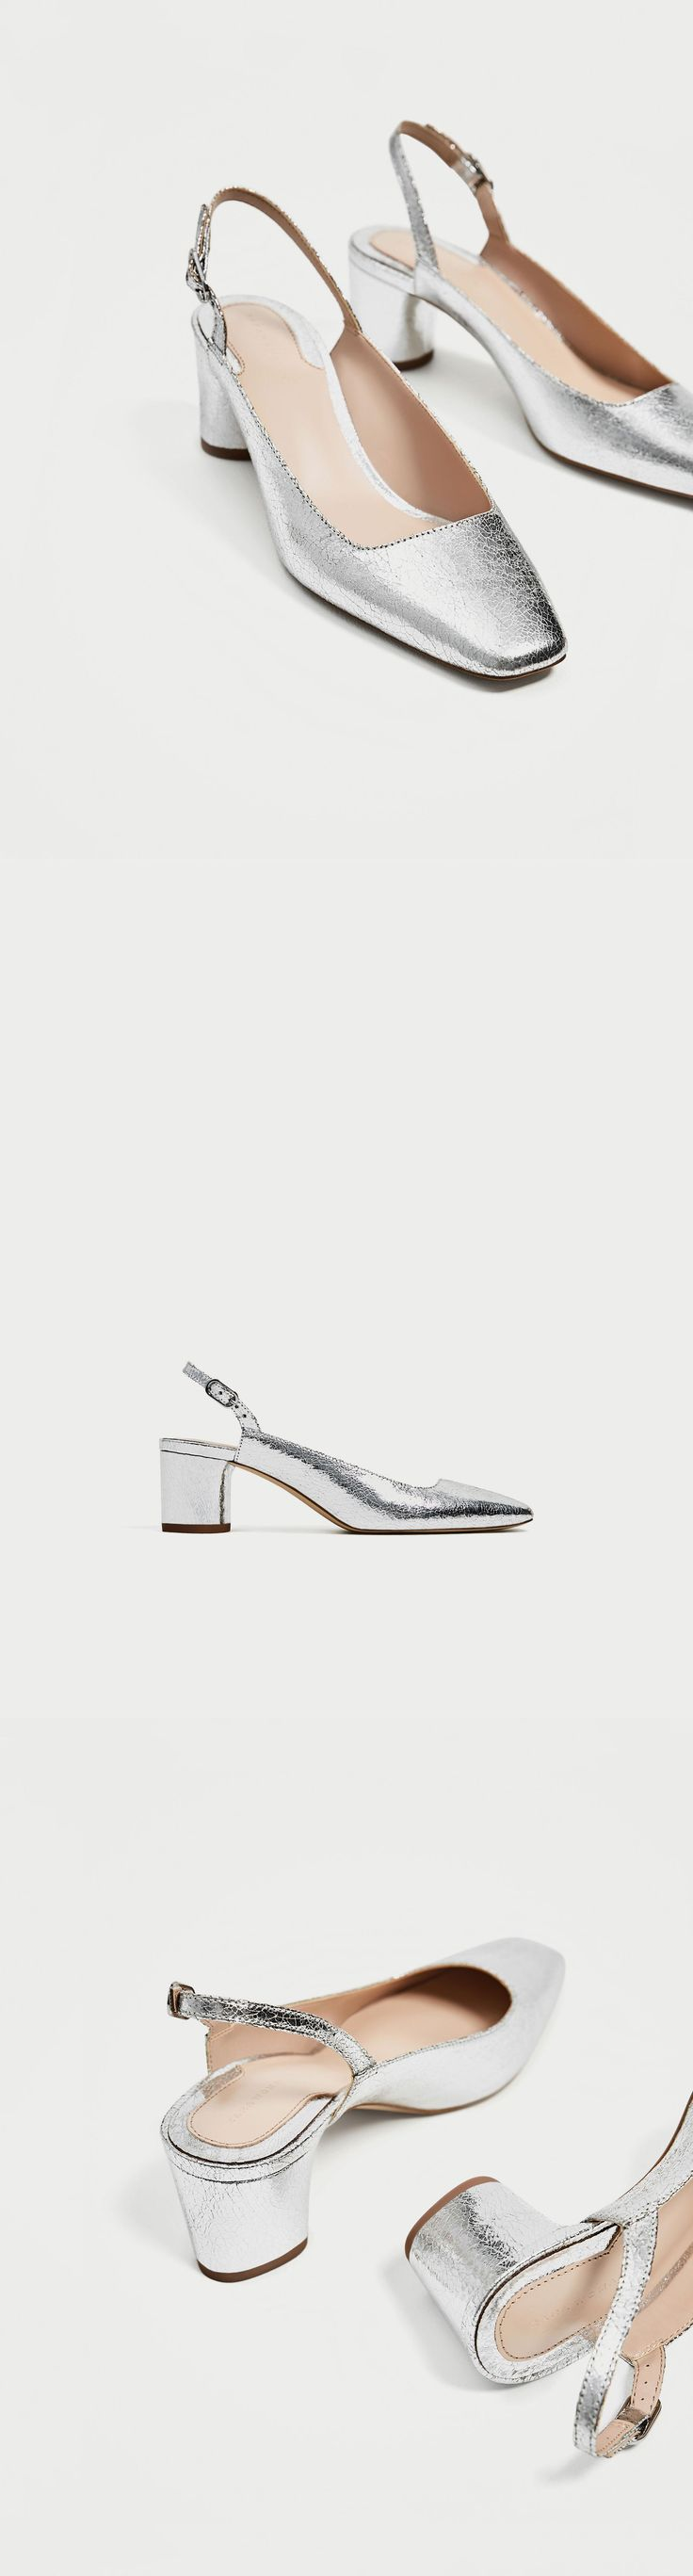 Silver Slingback Court Shoes // clojure.lang.LazySeq@f89e5cee // Zara // Backless, kitten heel shoes in a silver colour. Squared toe. Round heel. Fastens with a mini buckled strap around the ankle. Heel height is 6 cm.